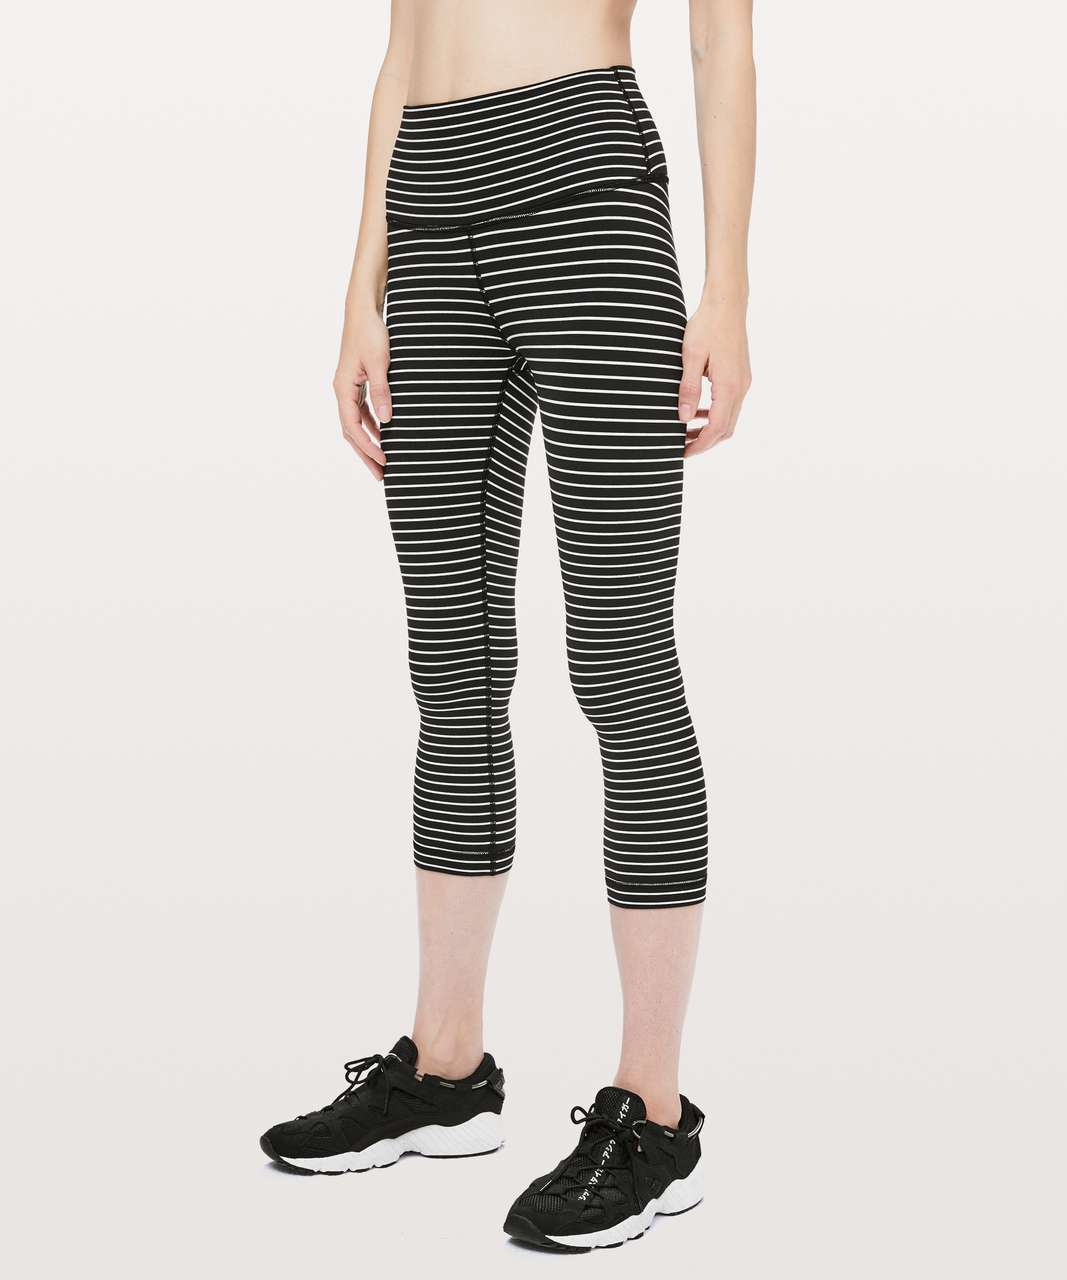 "Lululemon Wunder Under Crop (High-Rise) *21"" - Parallel Stripe Black White"